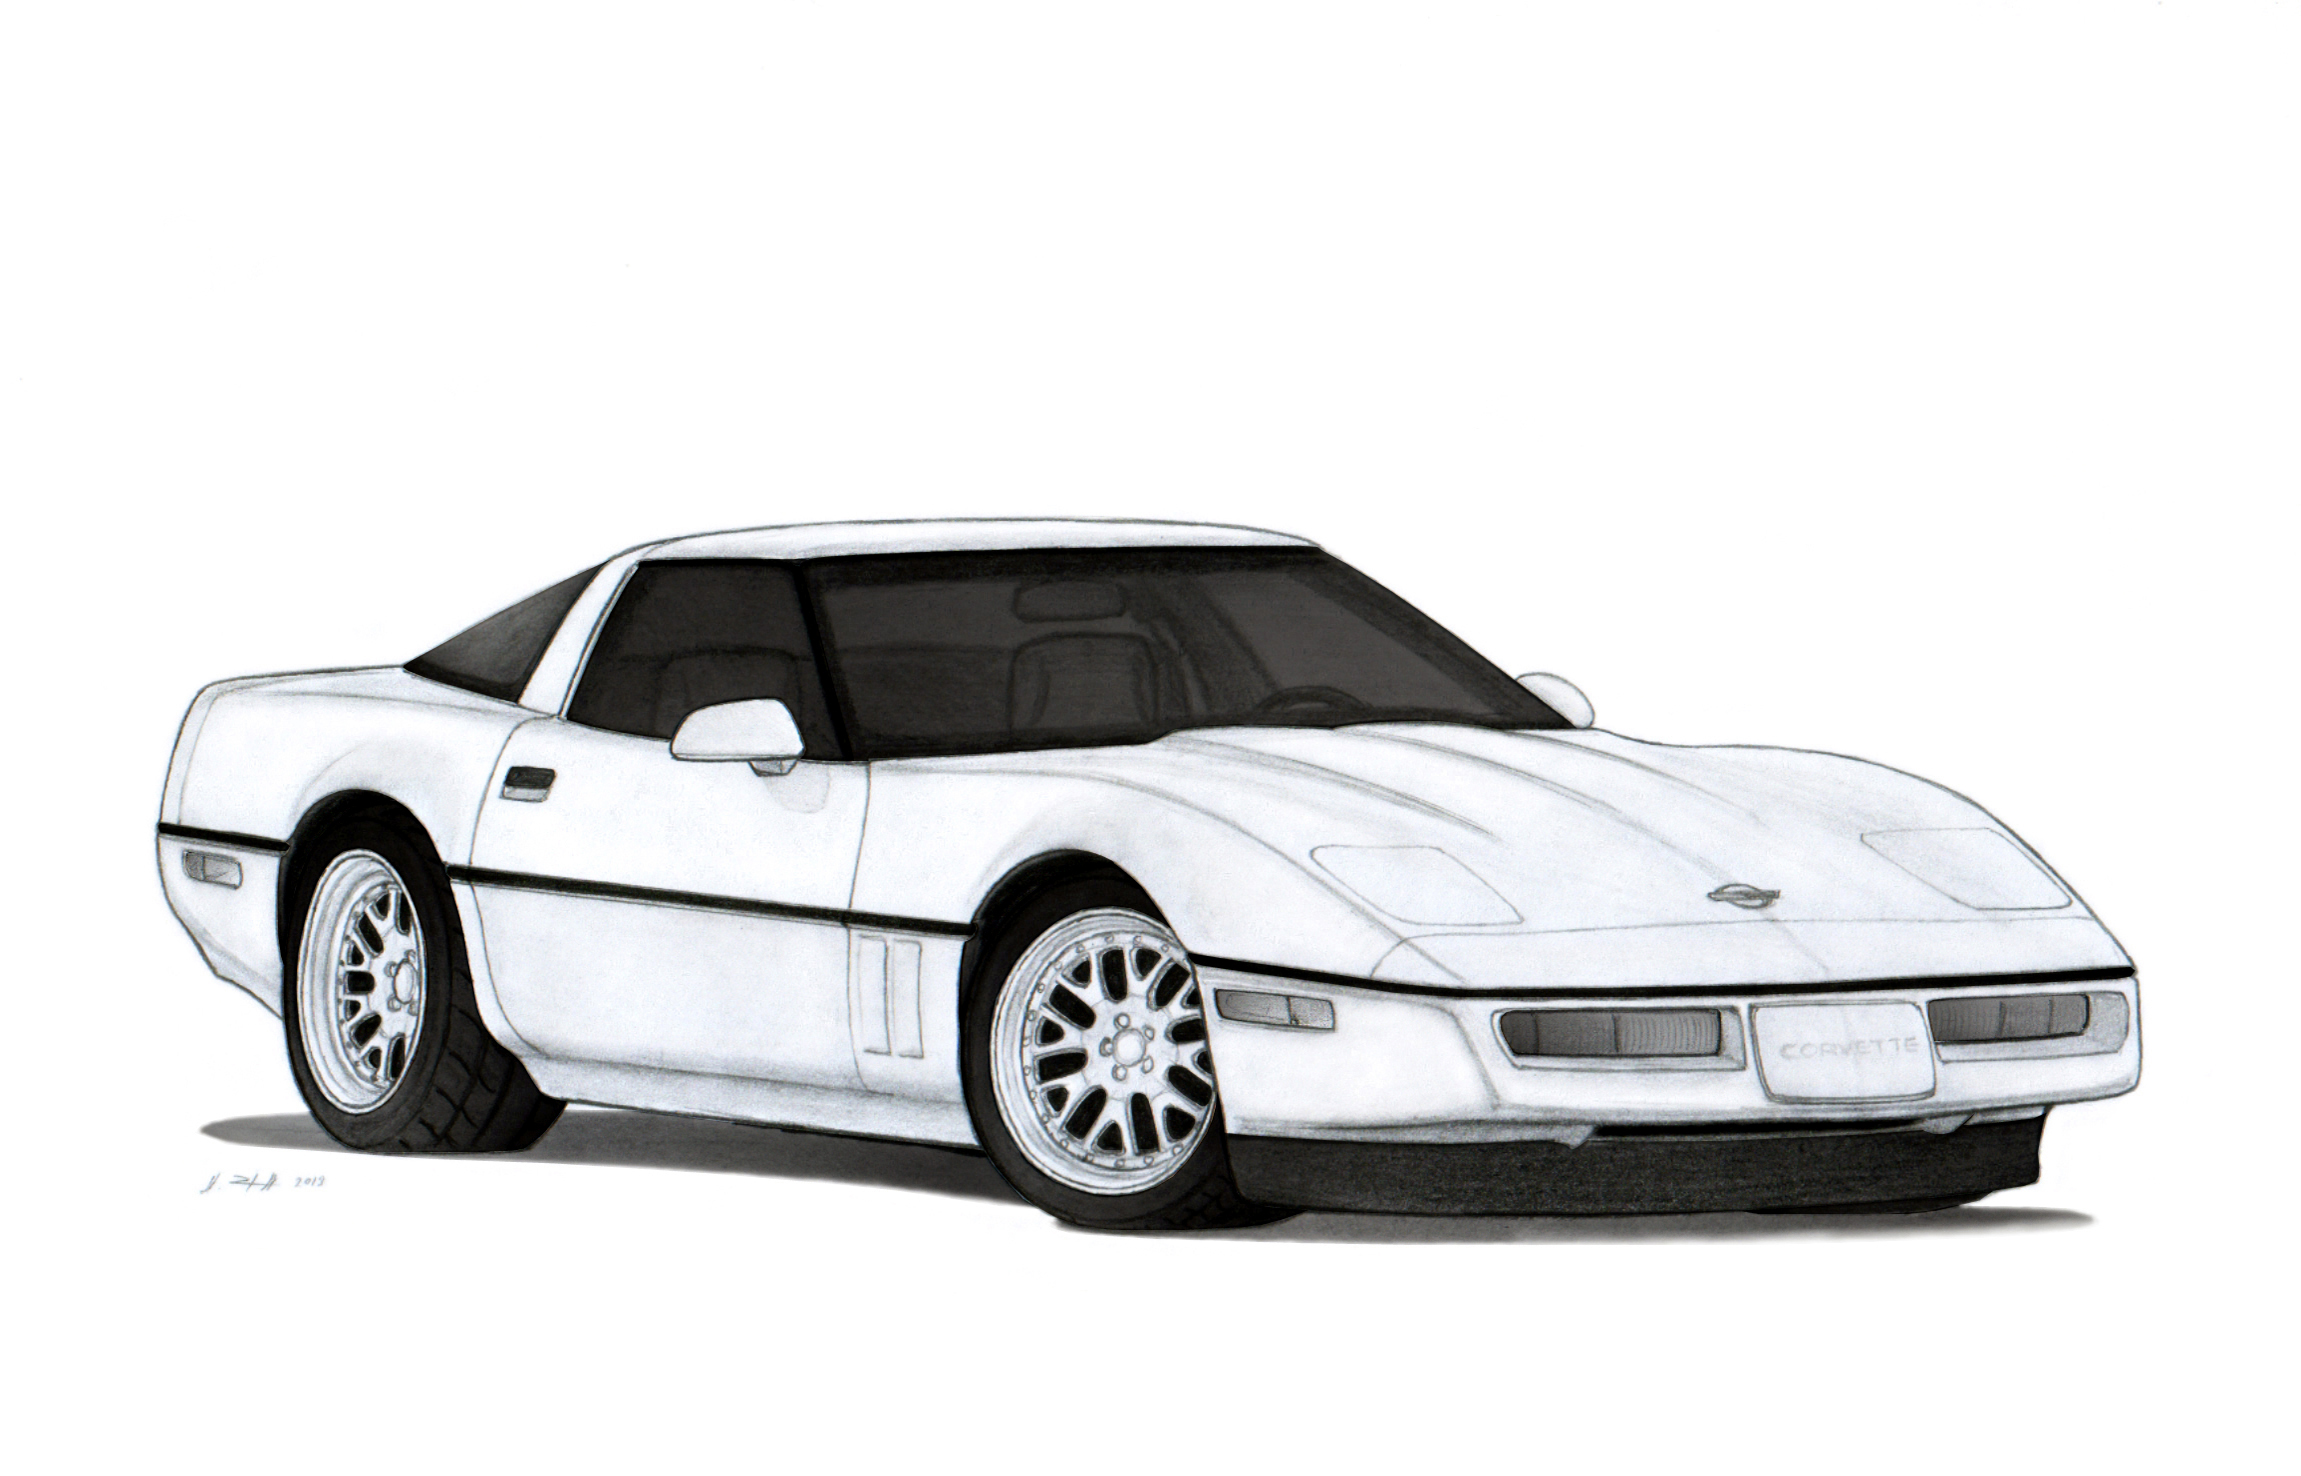 1990 Chevrolet Corvette Zr 1 C4 Drawing By Vertualissimo